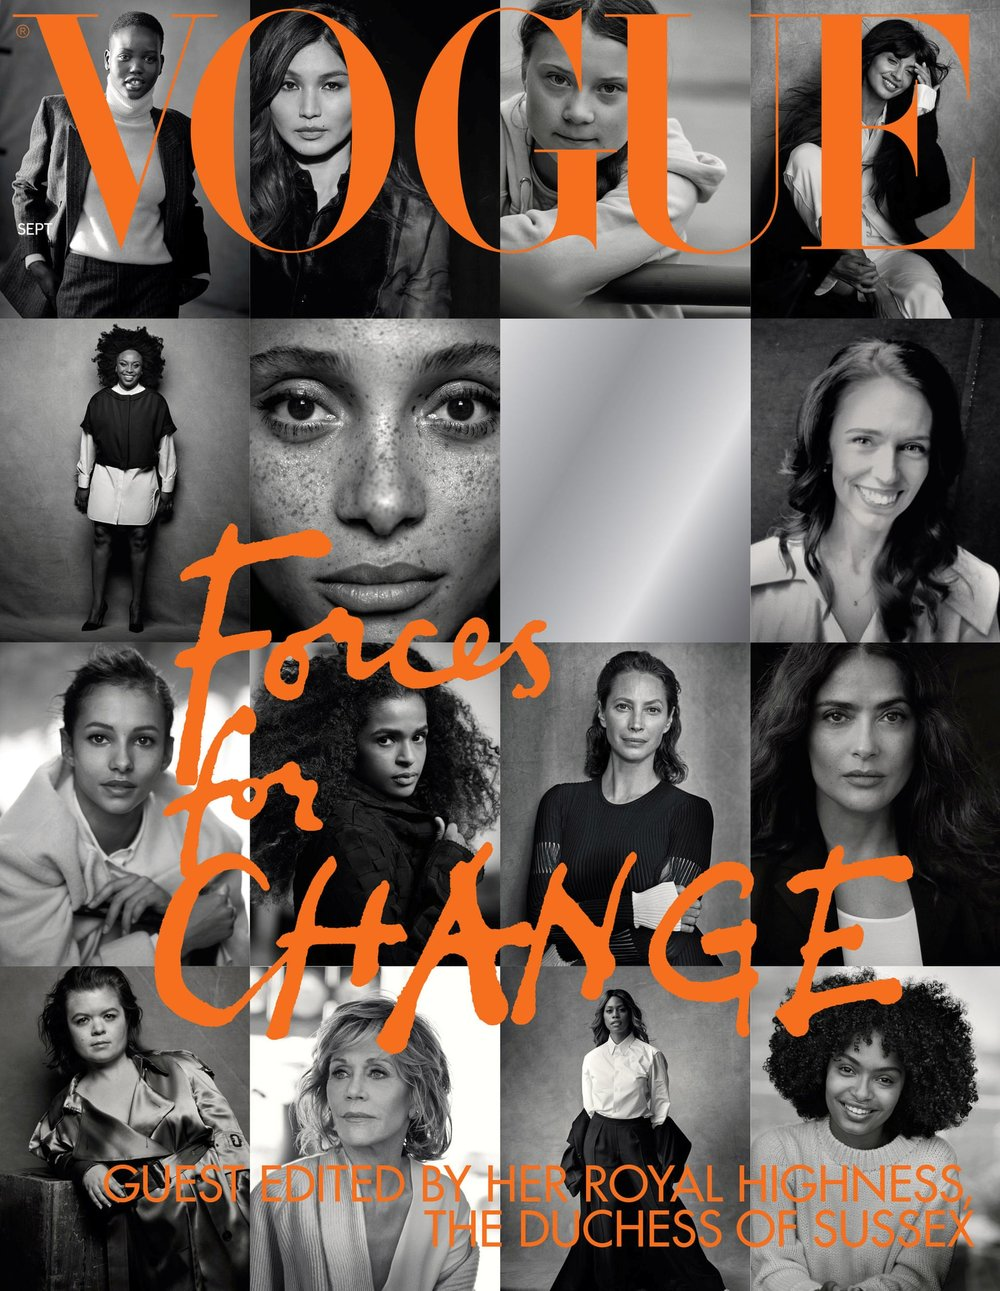 British+Vogue+Sept+2019+Change+Cover.jpeg